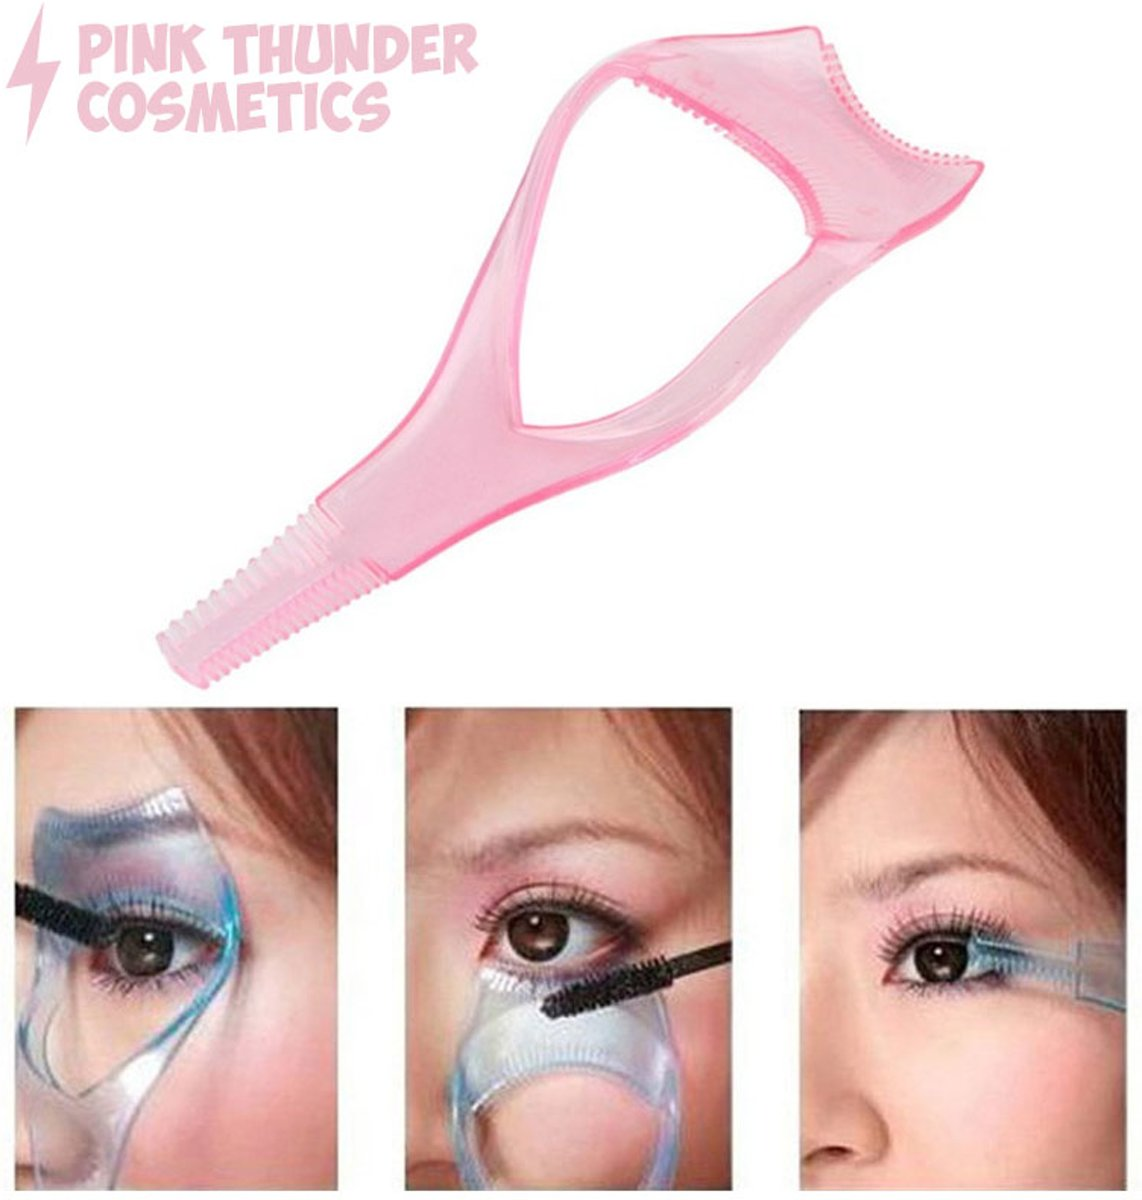 3-in-1 mascara applicator | Beauty Tool | Pink Thunder Cosmetics |Anti knoei